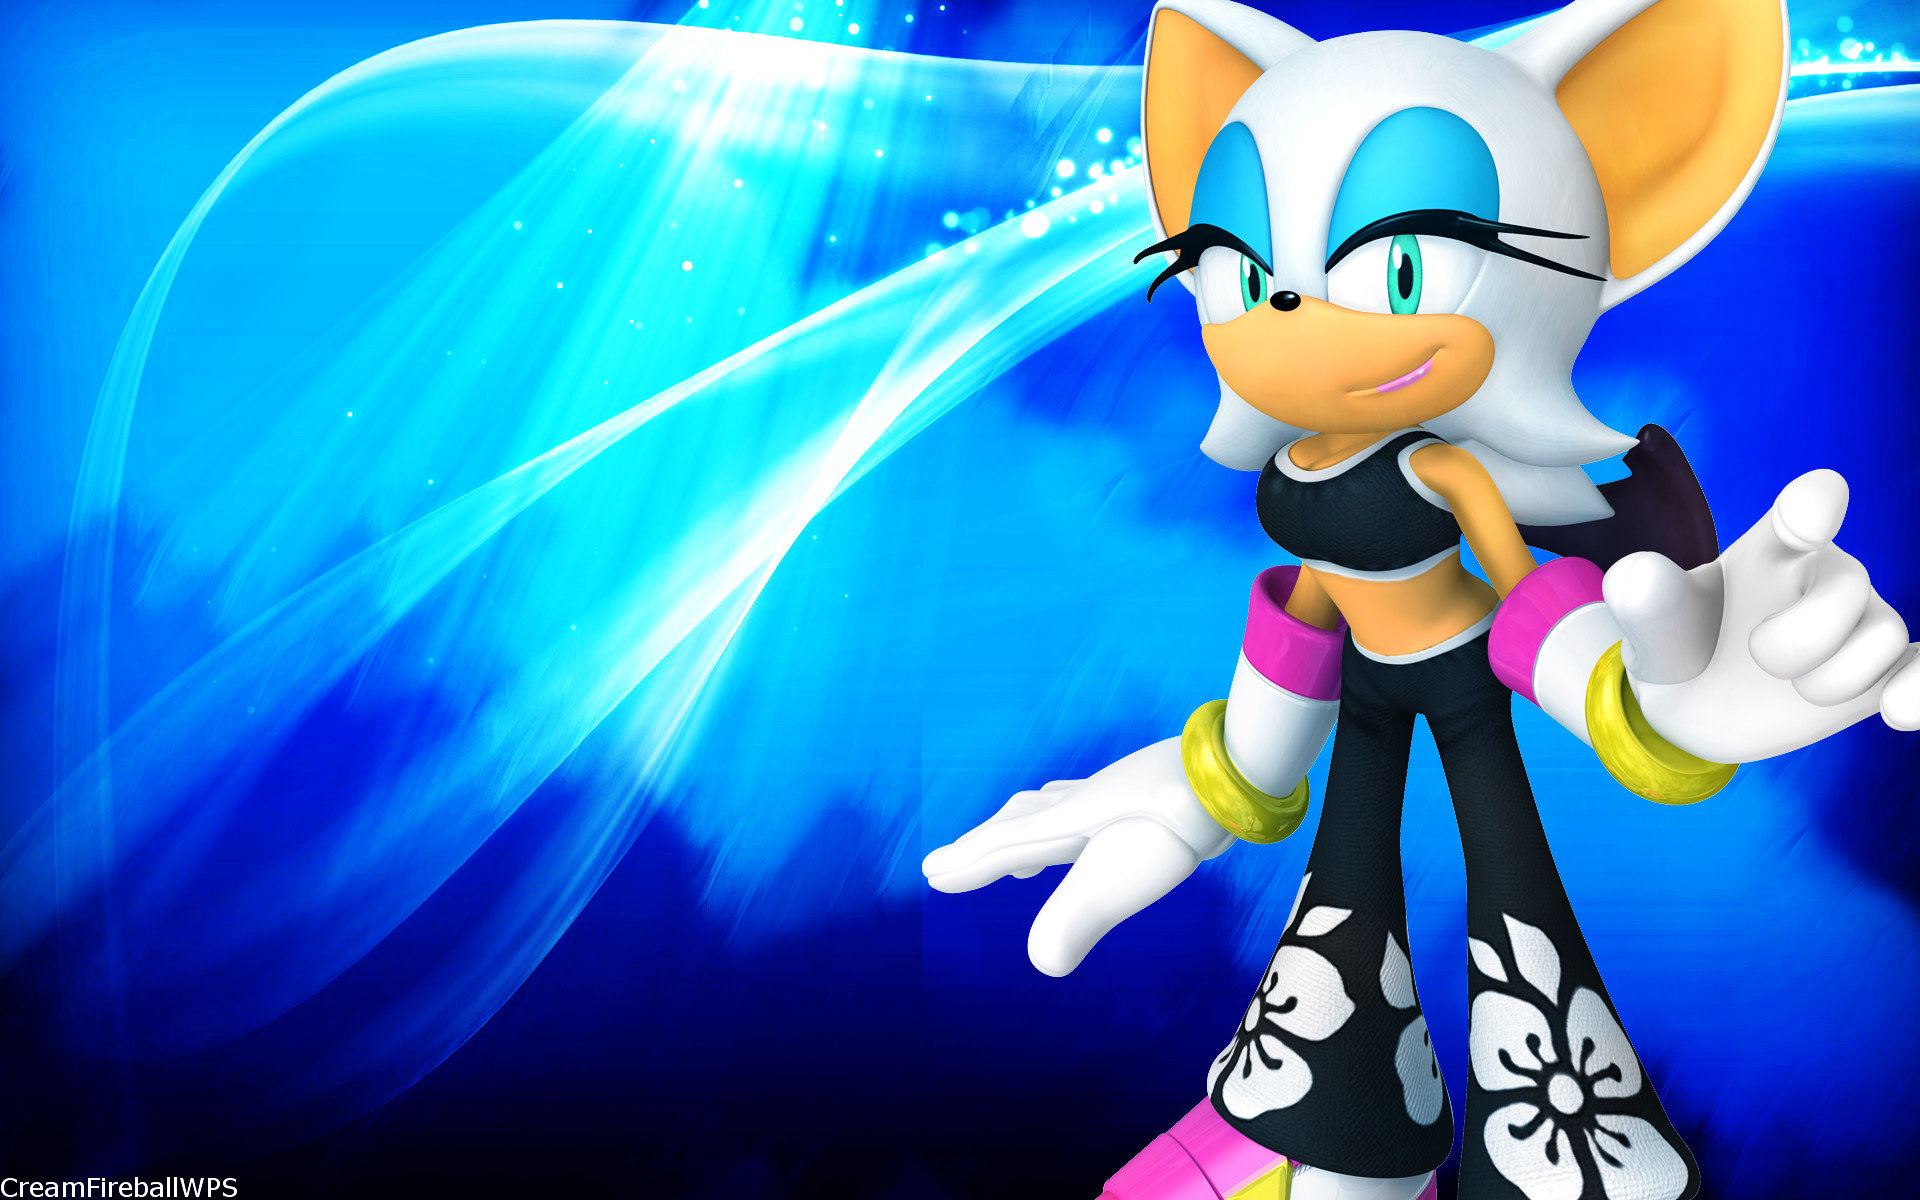 Rouge The Bat Wallpapers Hd For Desktop Backgrounds